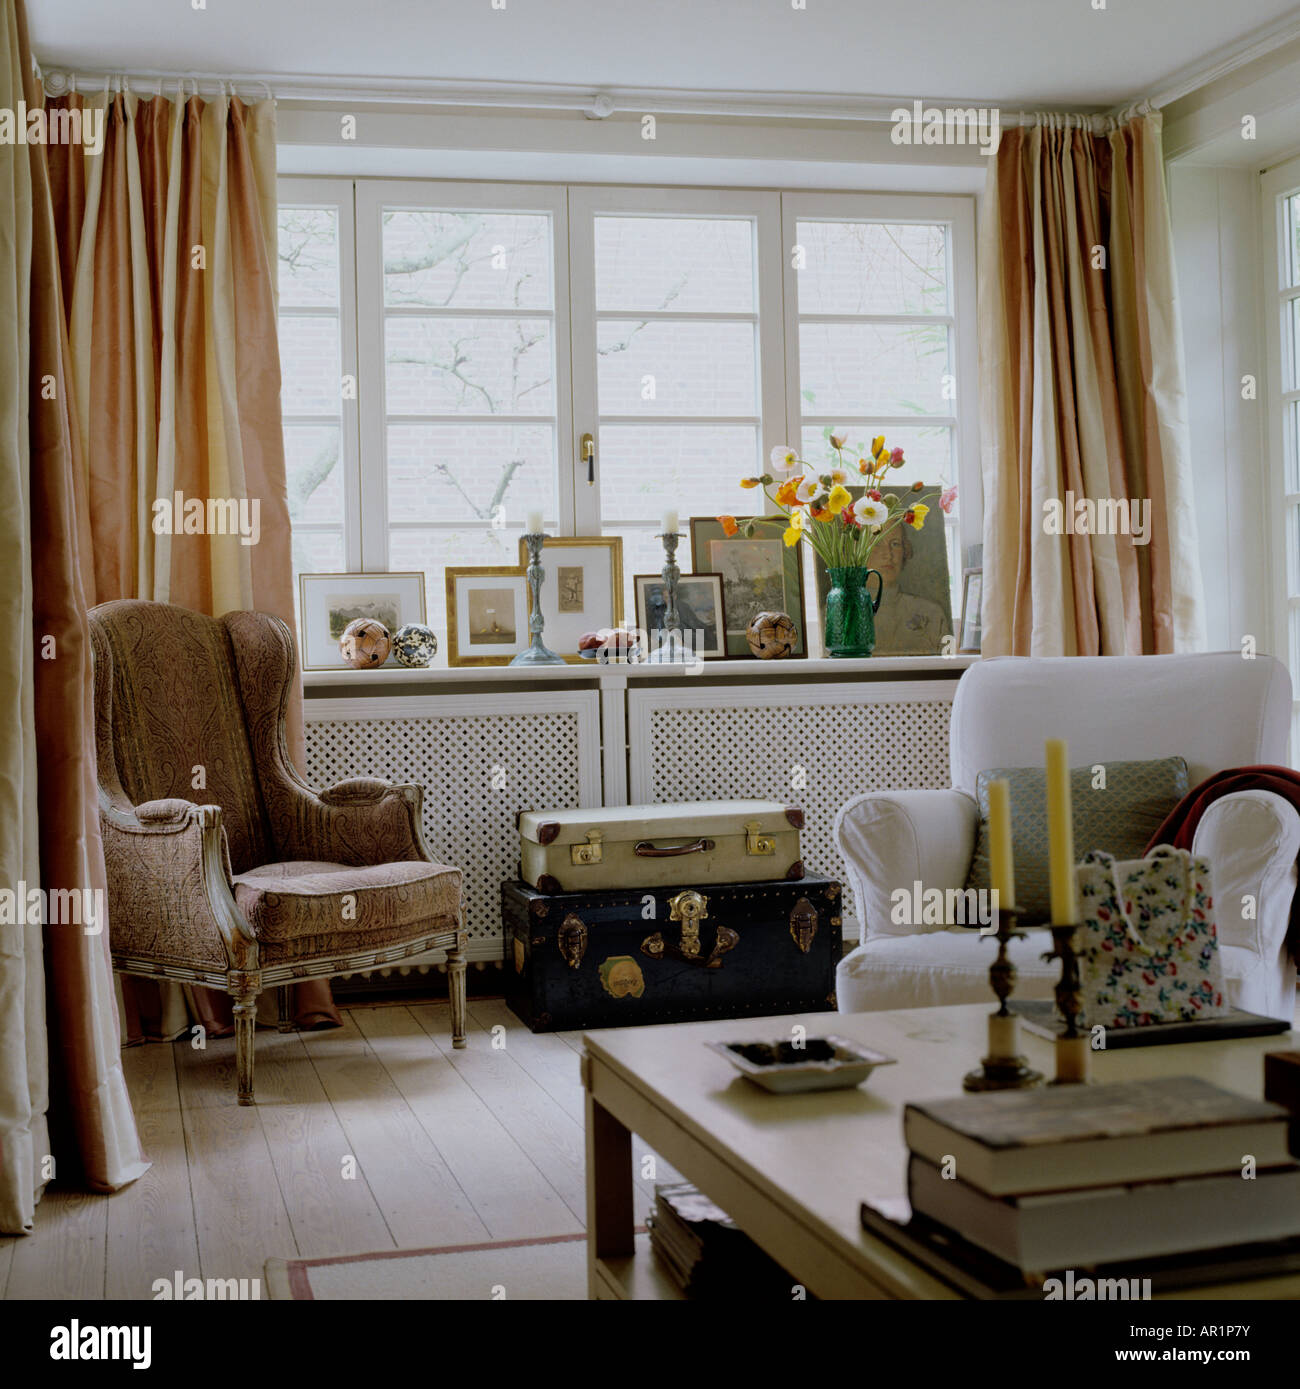 Stock Photo   Sitting Room With Armchairs, Coffee Table And Old Luggage As  A Side Table